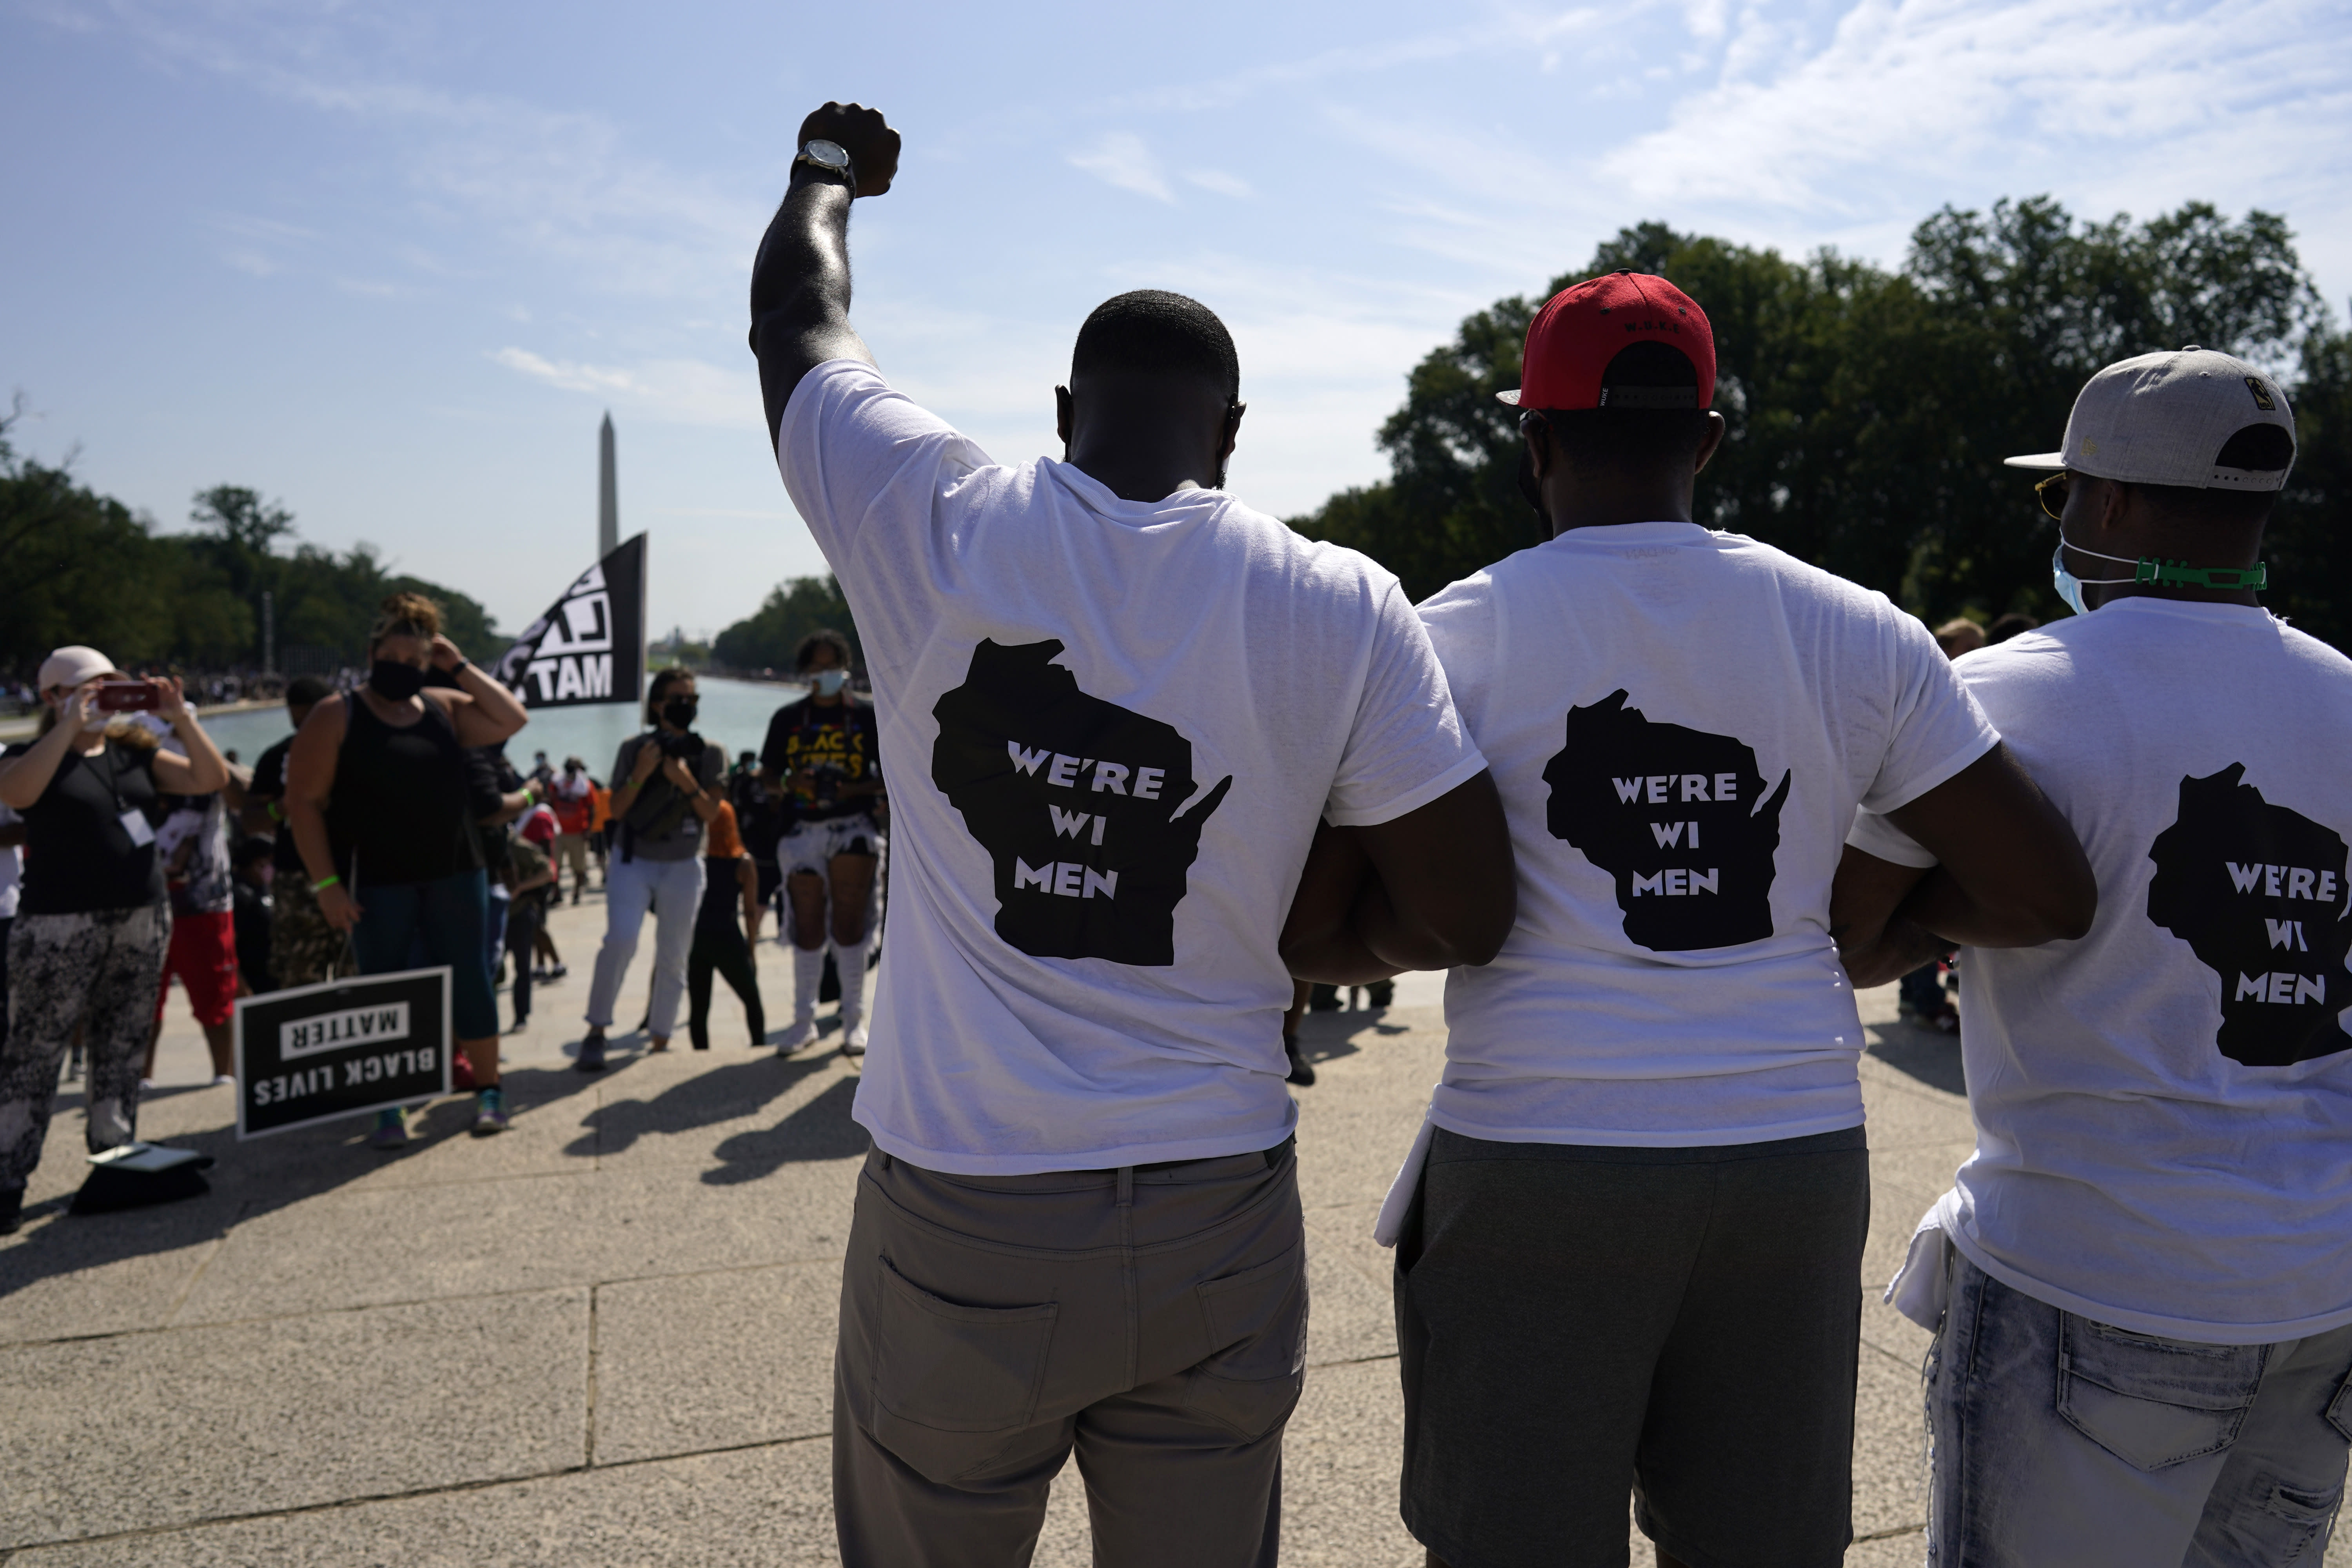 """Men from Milwaukee wear """"We're WI Men"""" T-shirts as they attend the March on Washington, Friday Aug. 28, 2020, in Washington, on the 57th anniversary of the Rev. Martin Luther King Jr.'s """"I Have A Dream"""" speech. (AP Photo/Carolyn Kaster)"""